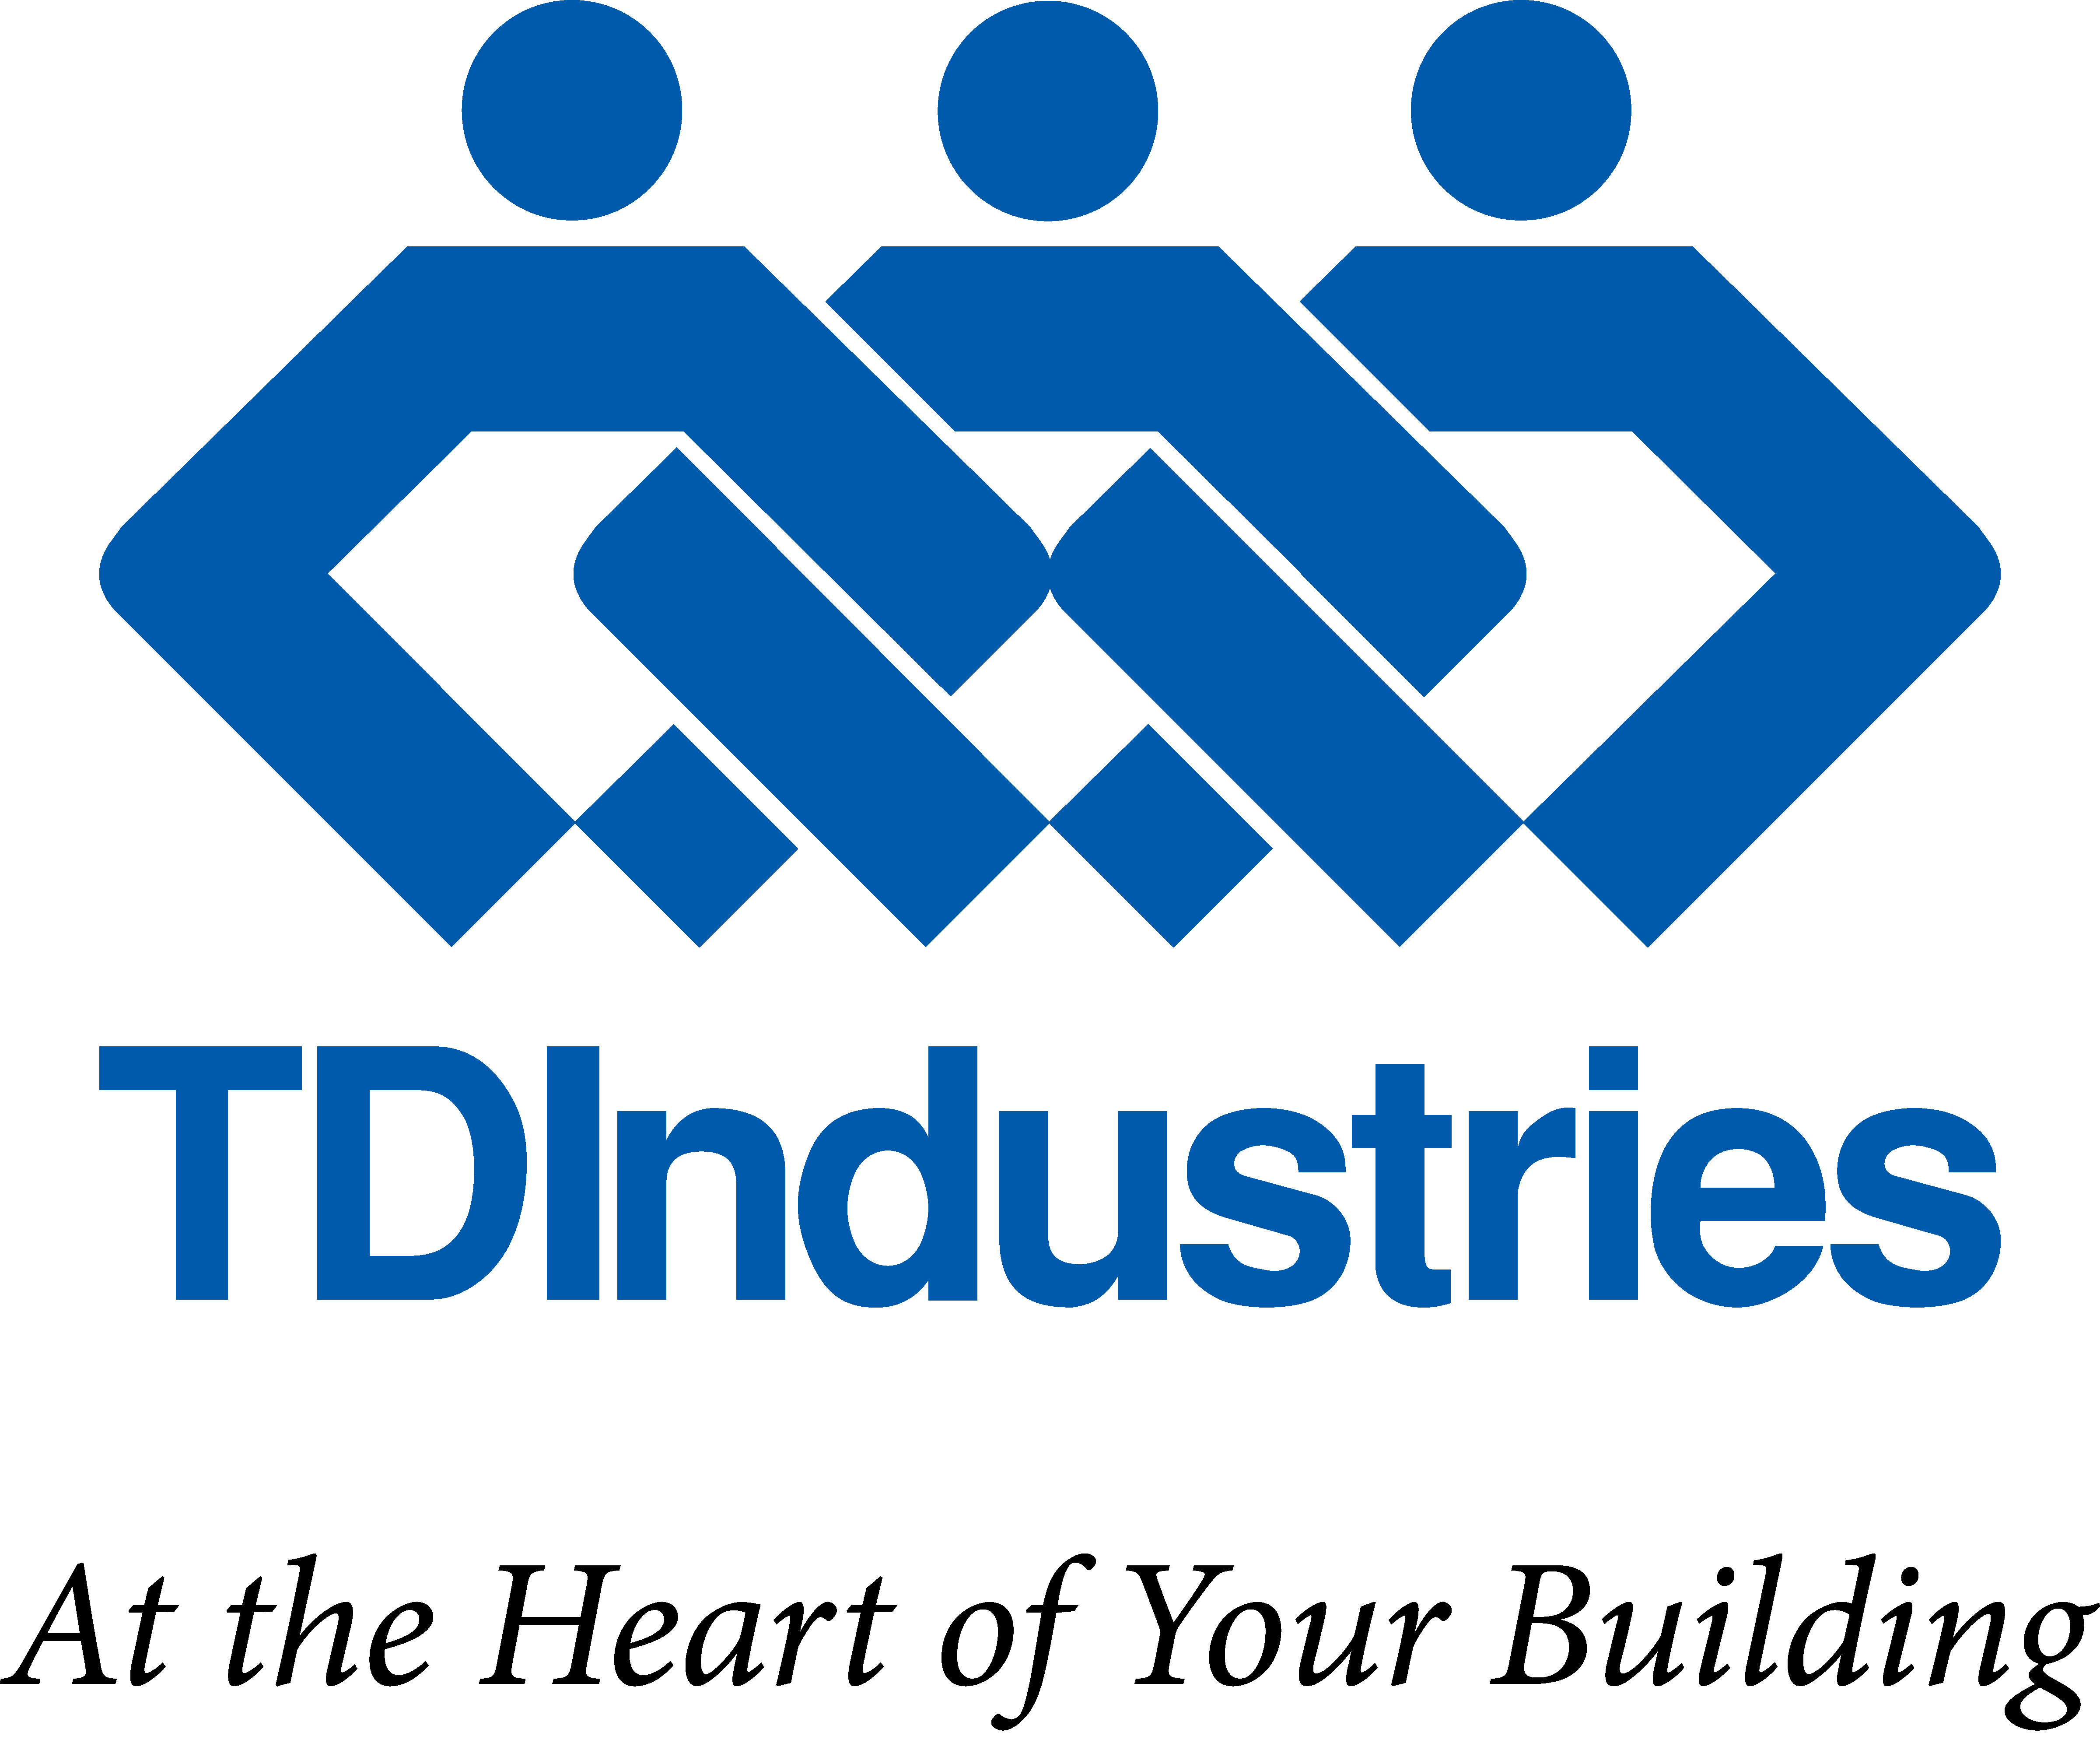 At the the Heart if Your Buildings TDIndustries Logo